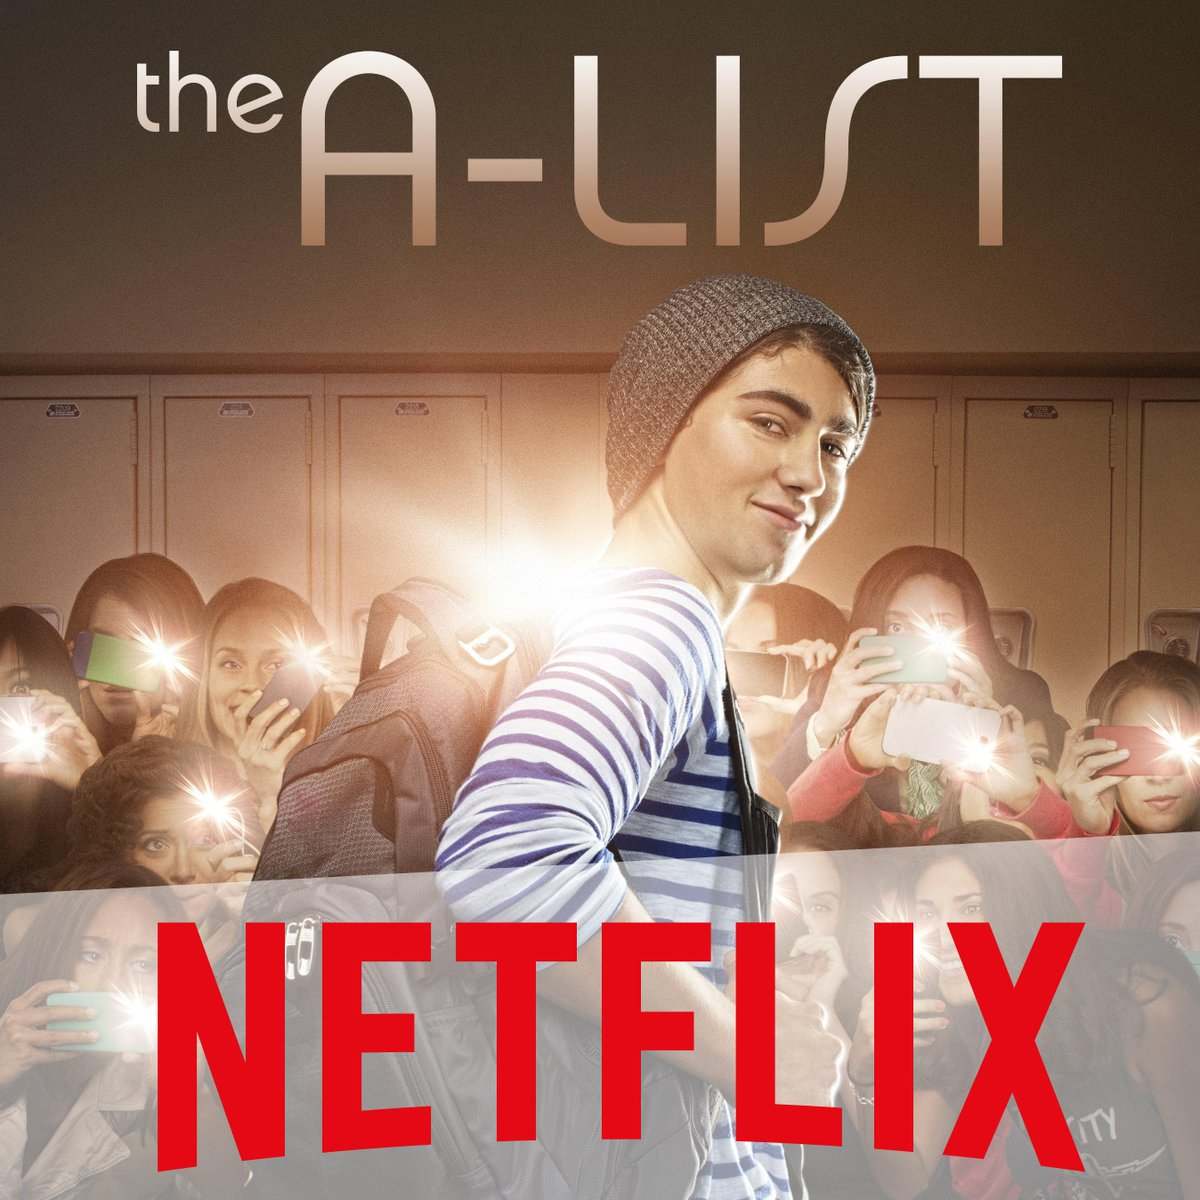 """The A-List Movie on Twitter: """"IT'S HERE!!!! #TheAList is NOW on @Netflix! Stream it TODAY! #Netflix http://t.co/emzlx05VGW"""""""